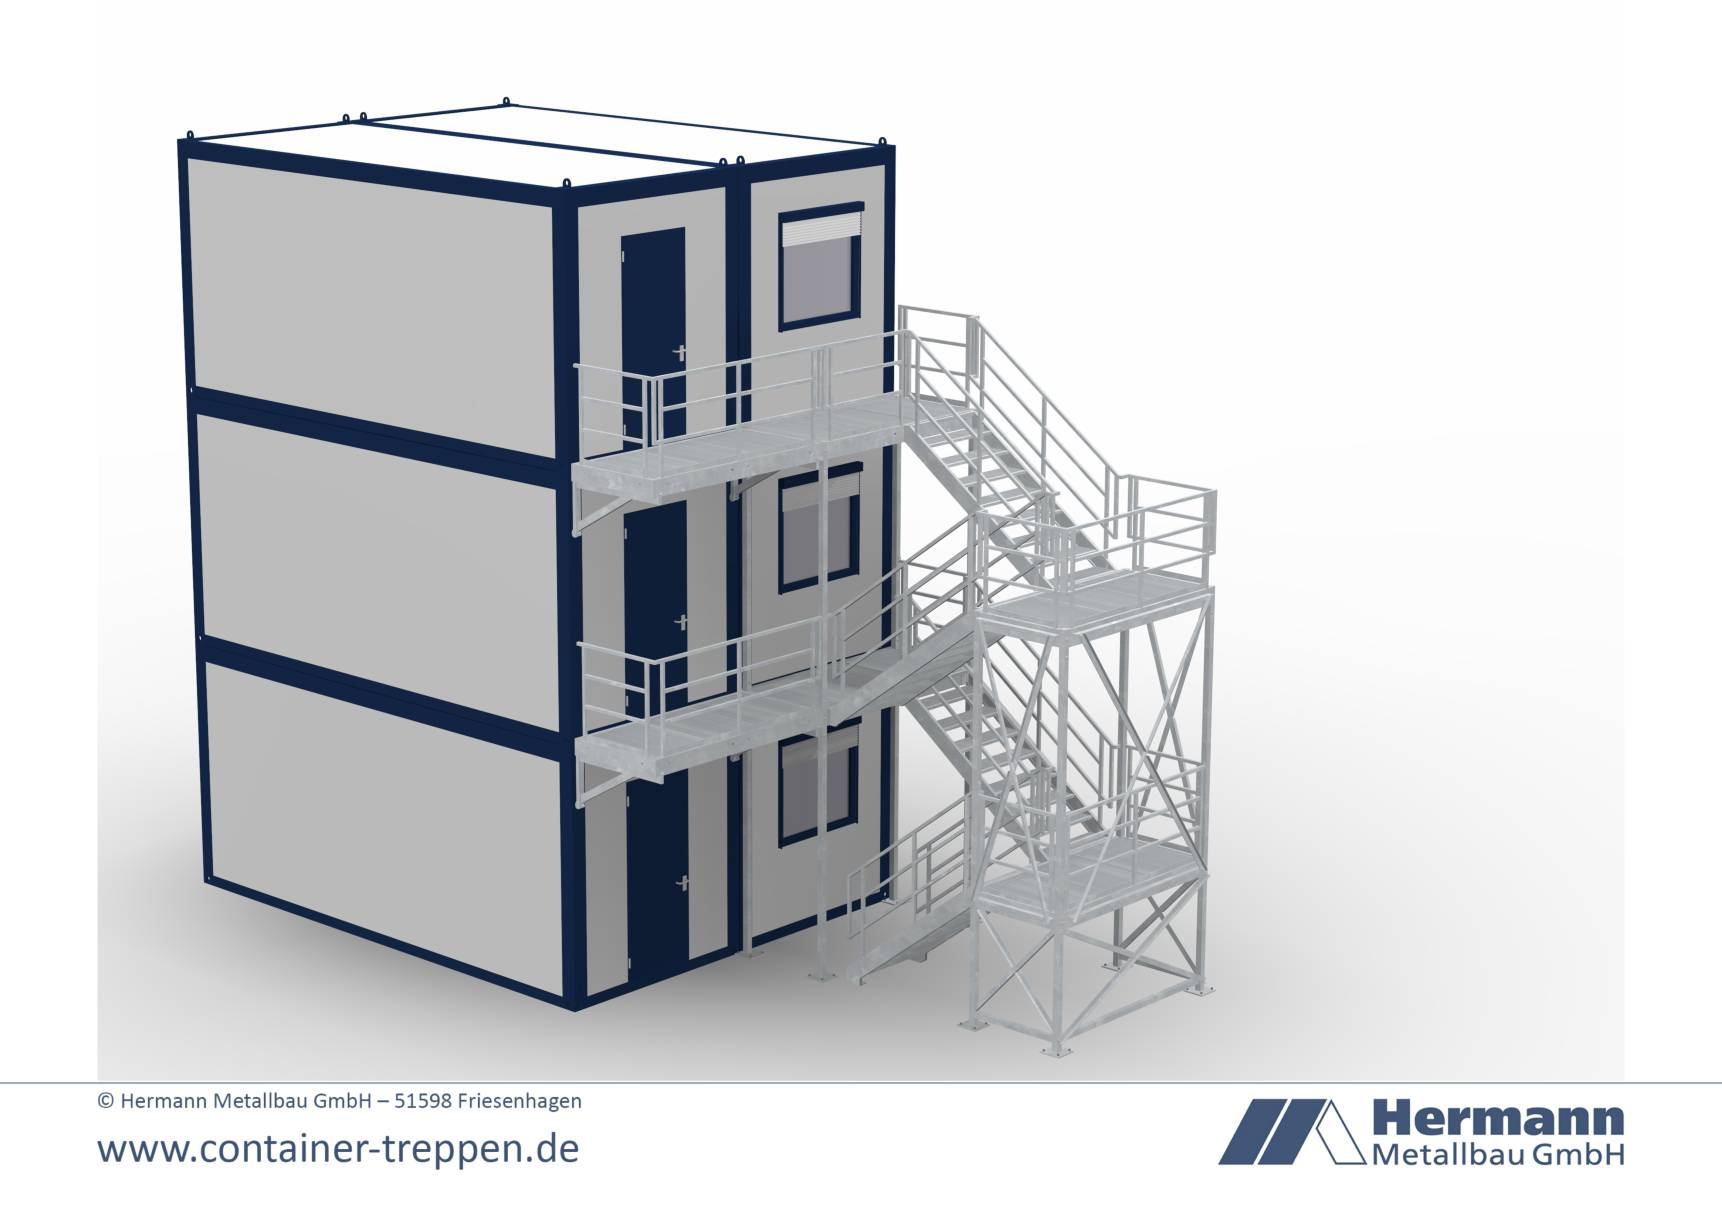 Containertreppe 3G  13